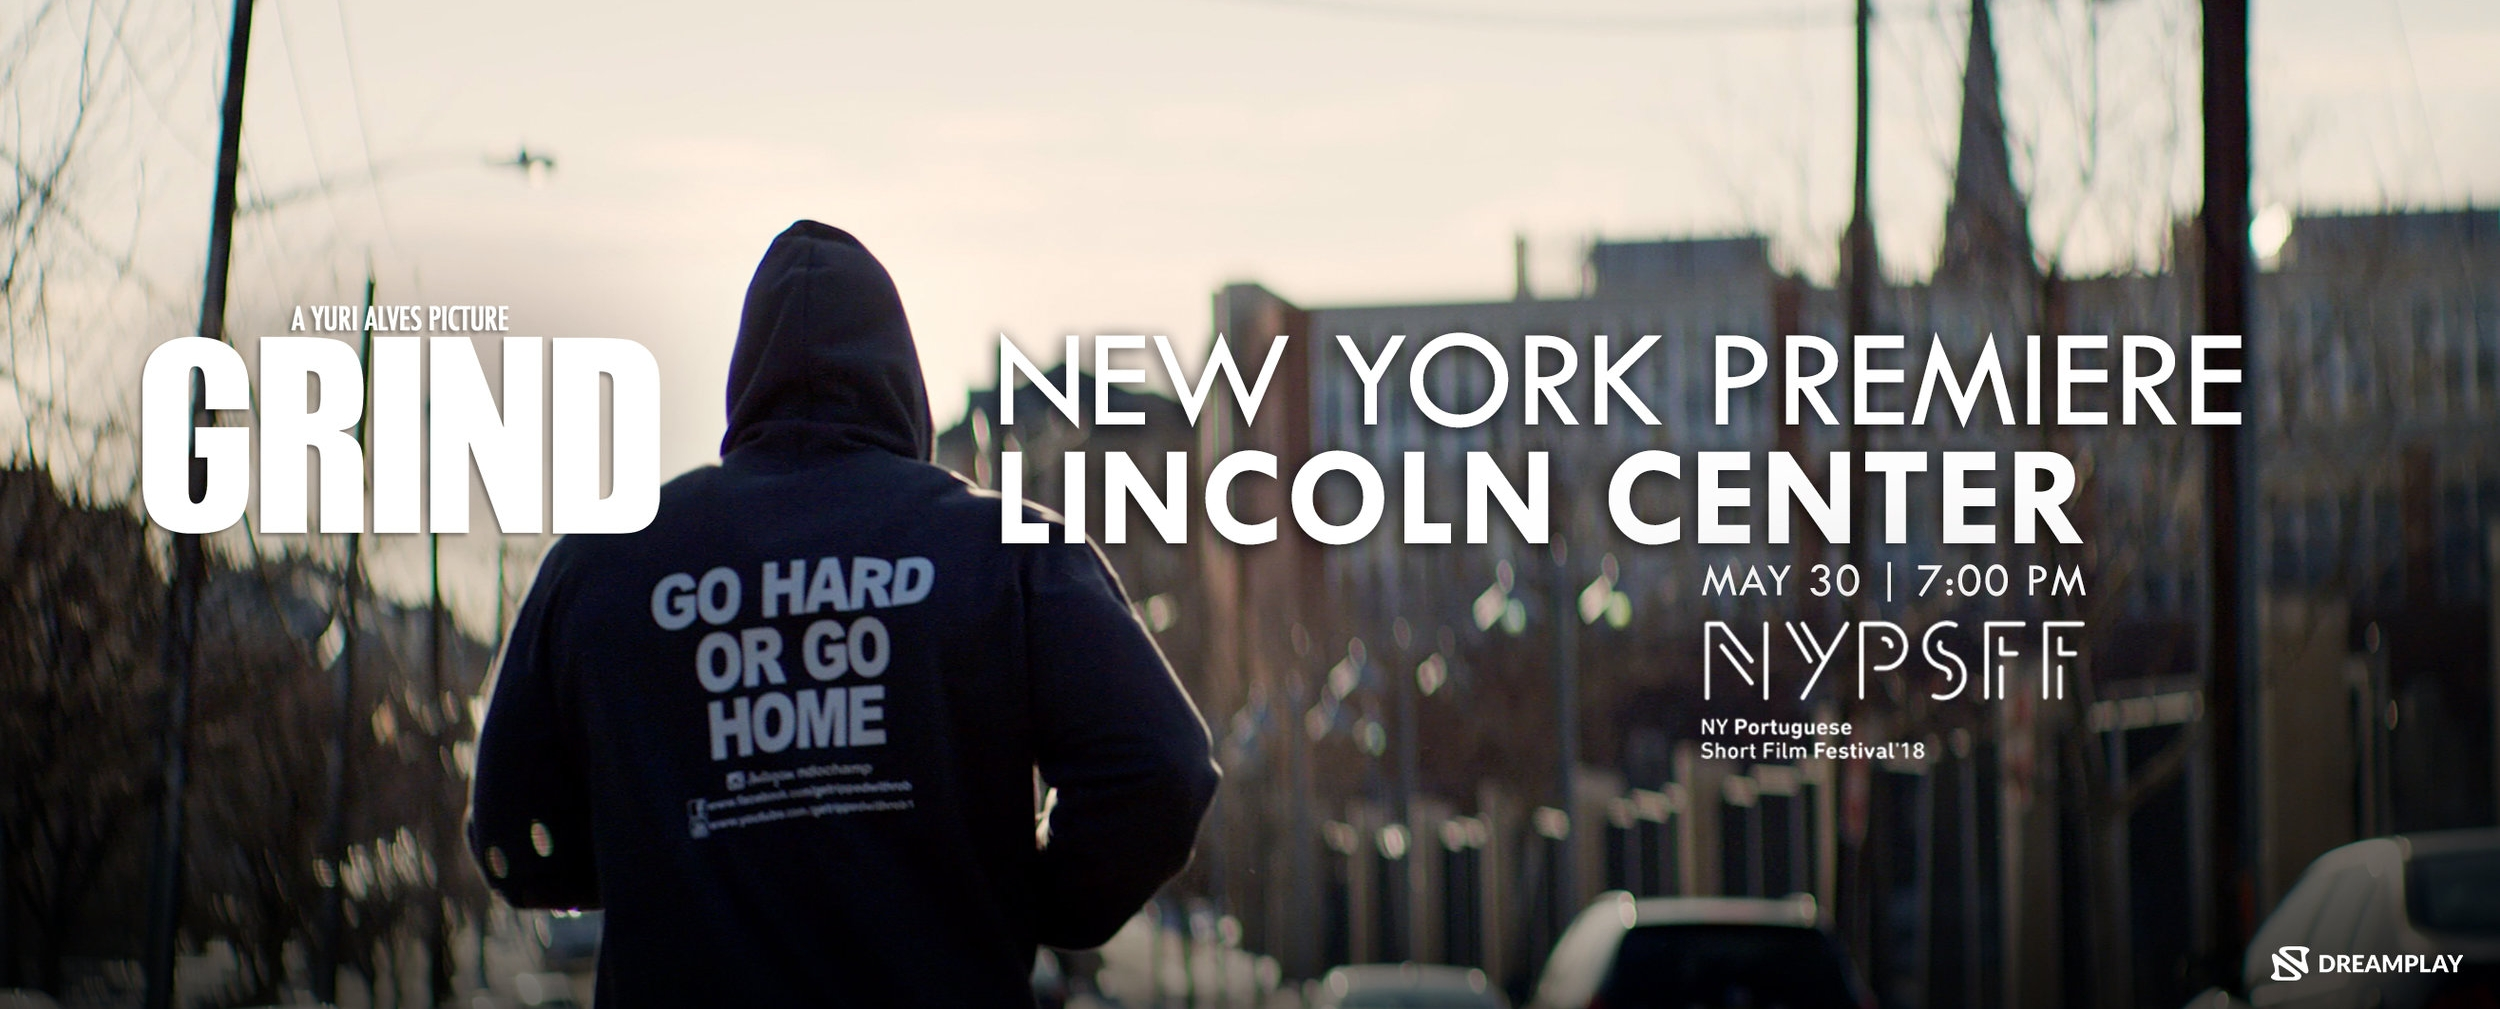 We invite you to come experience the award-winning film  GRIND  on the big screen. The NY Premiere will be held on May 30th, 7PM at  Lincoln Center  part of the NYPSFF 2018.